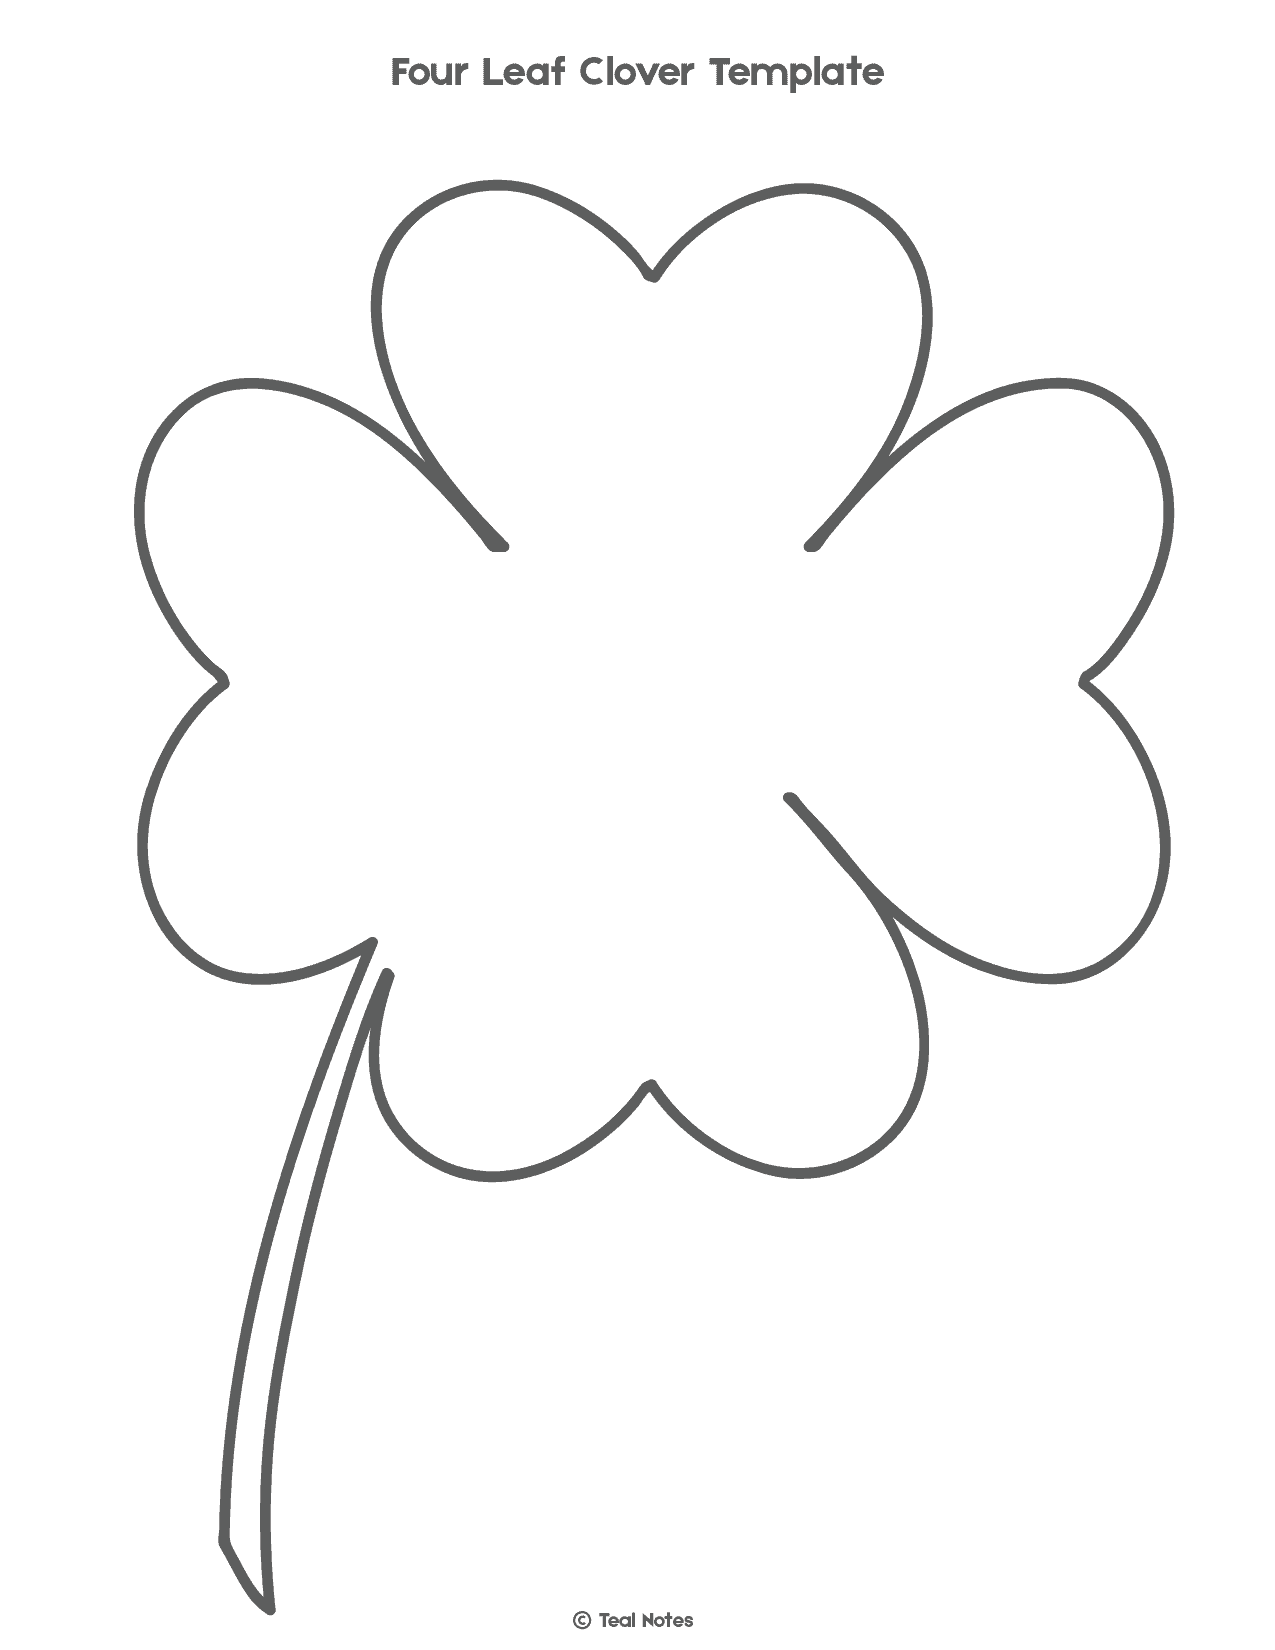 photo about Printable Four Leaf Clover called 4 Leaf Clover Template: Free of charge Shamrock Template Printable